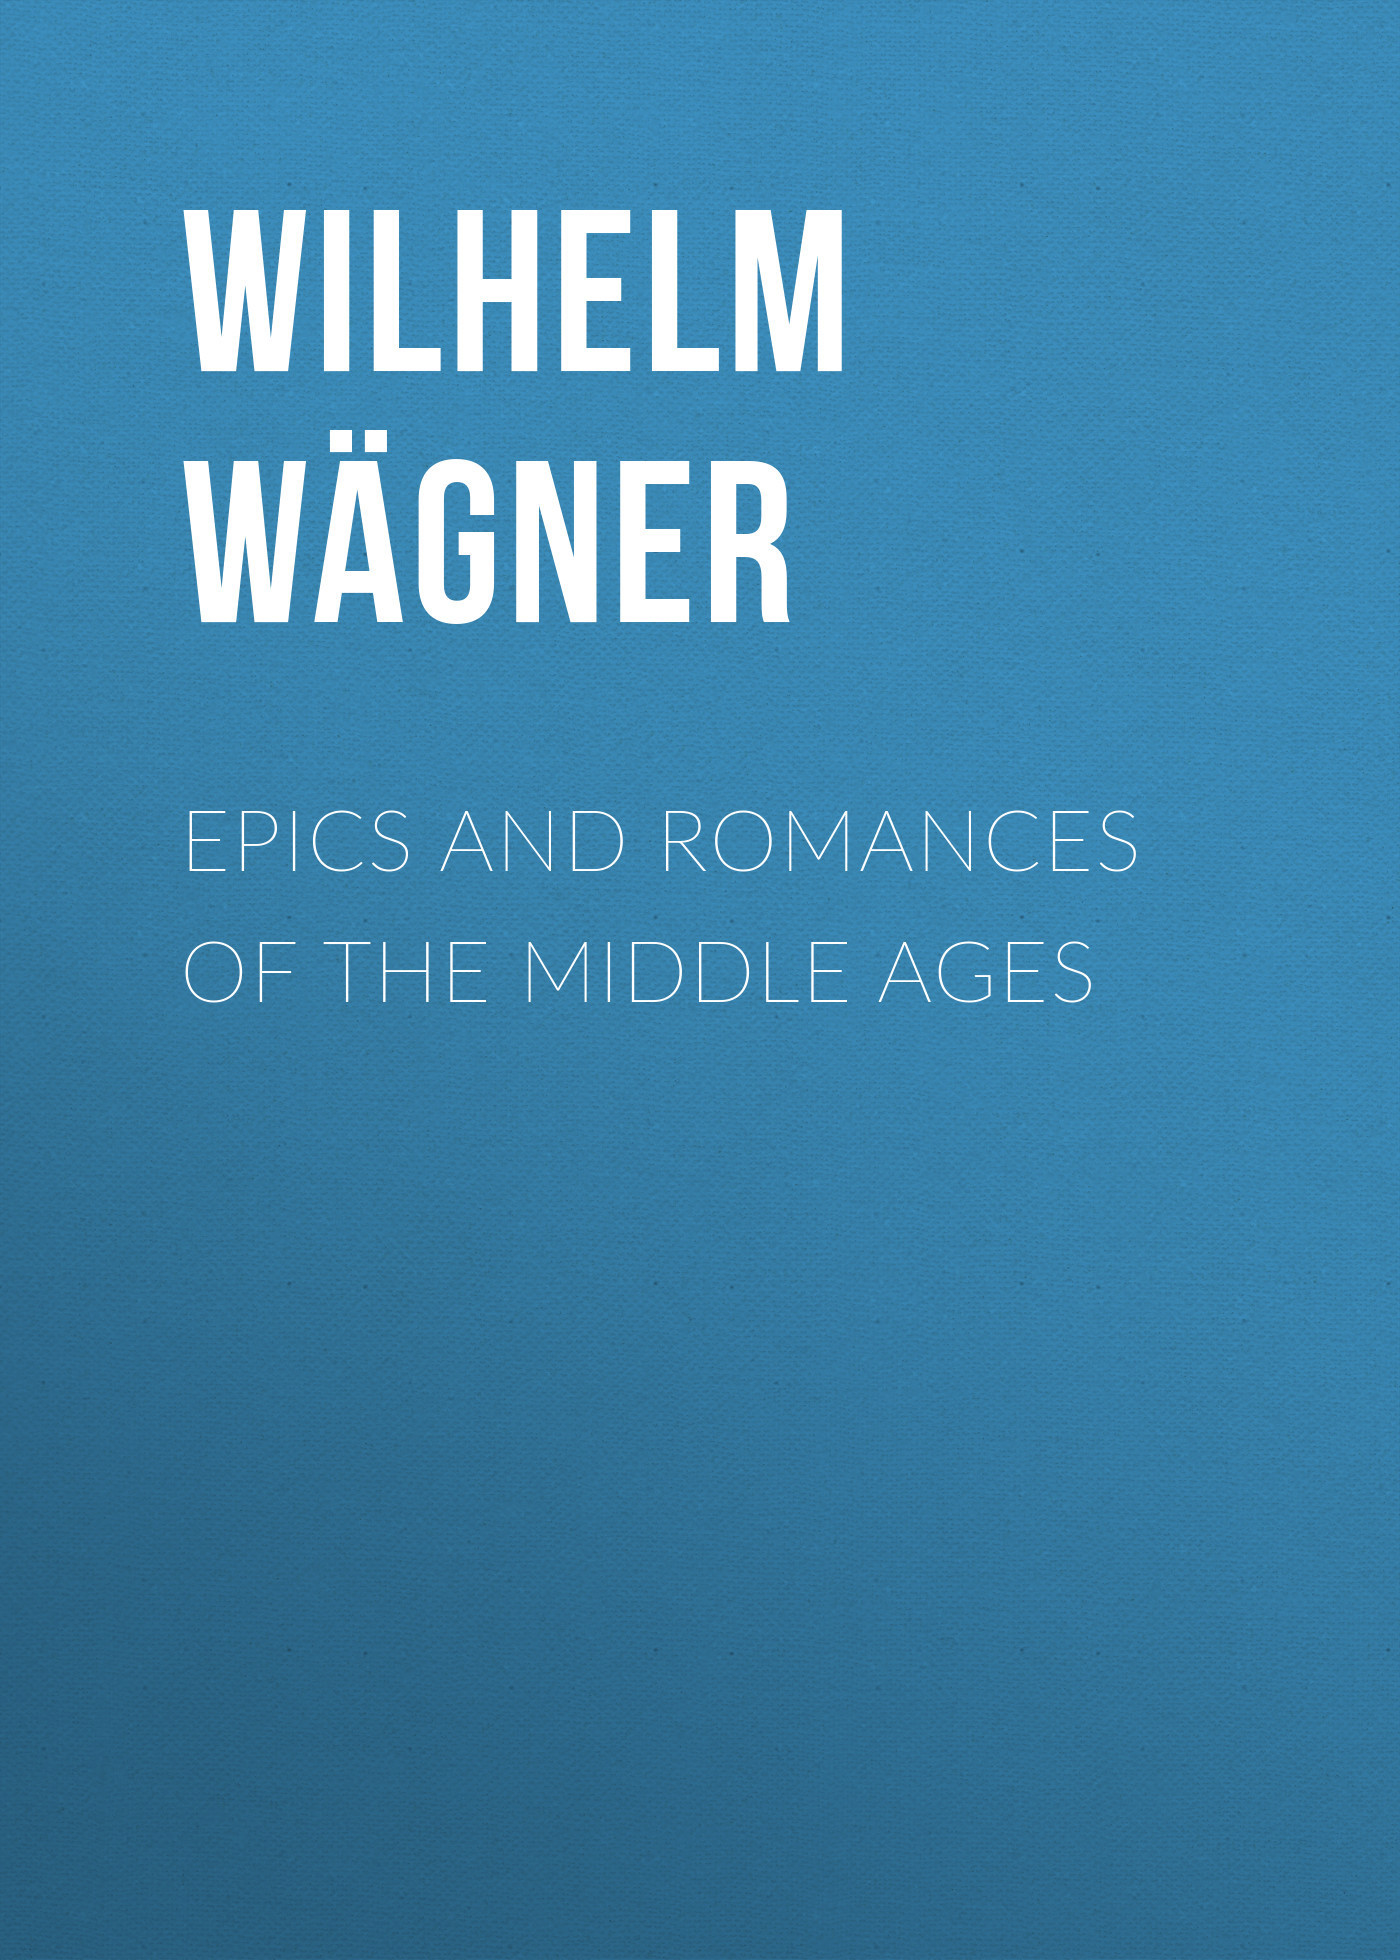 Wilhelm Wägner Epics and Romances of the Middle Ages middle english romances nce